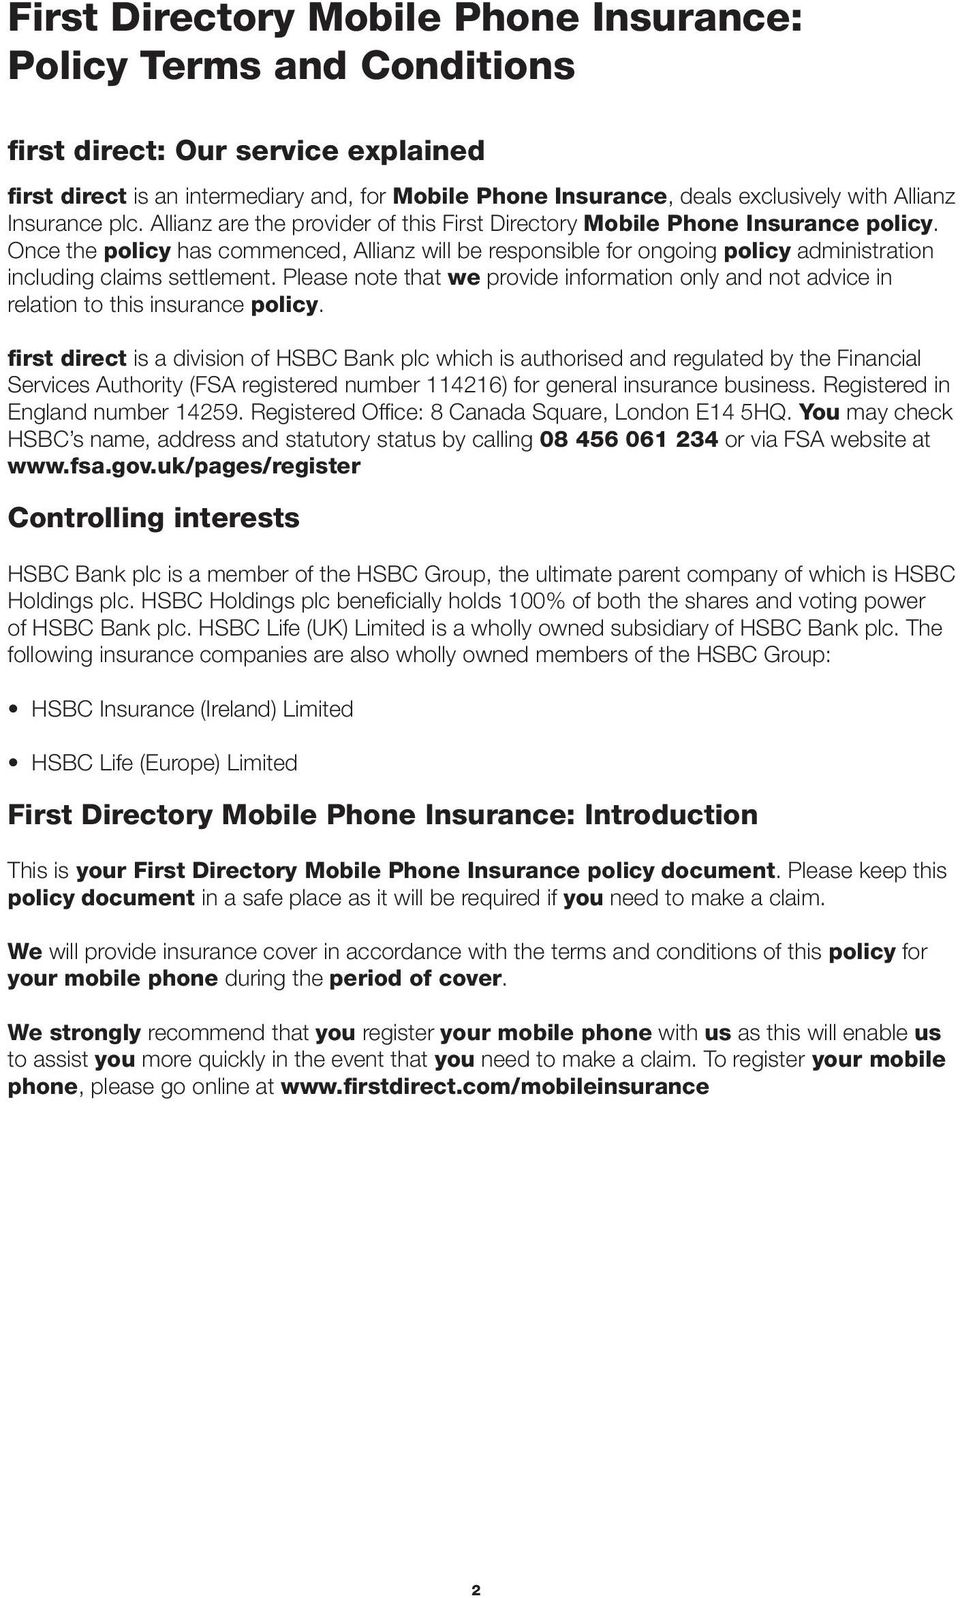 Mobile Phone Insurance  First Directory  Policy Terms and